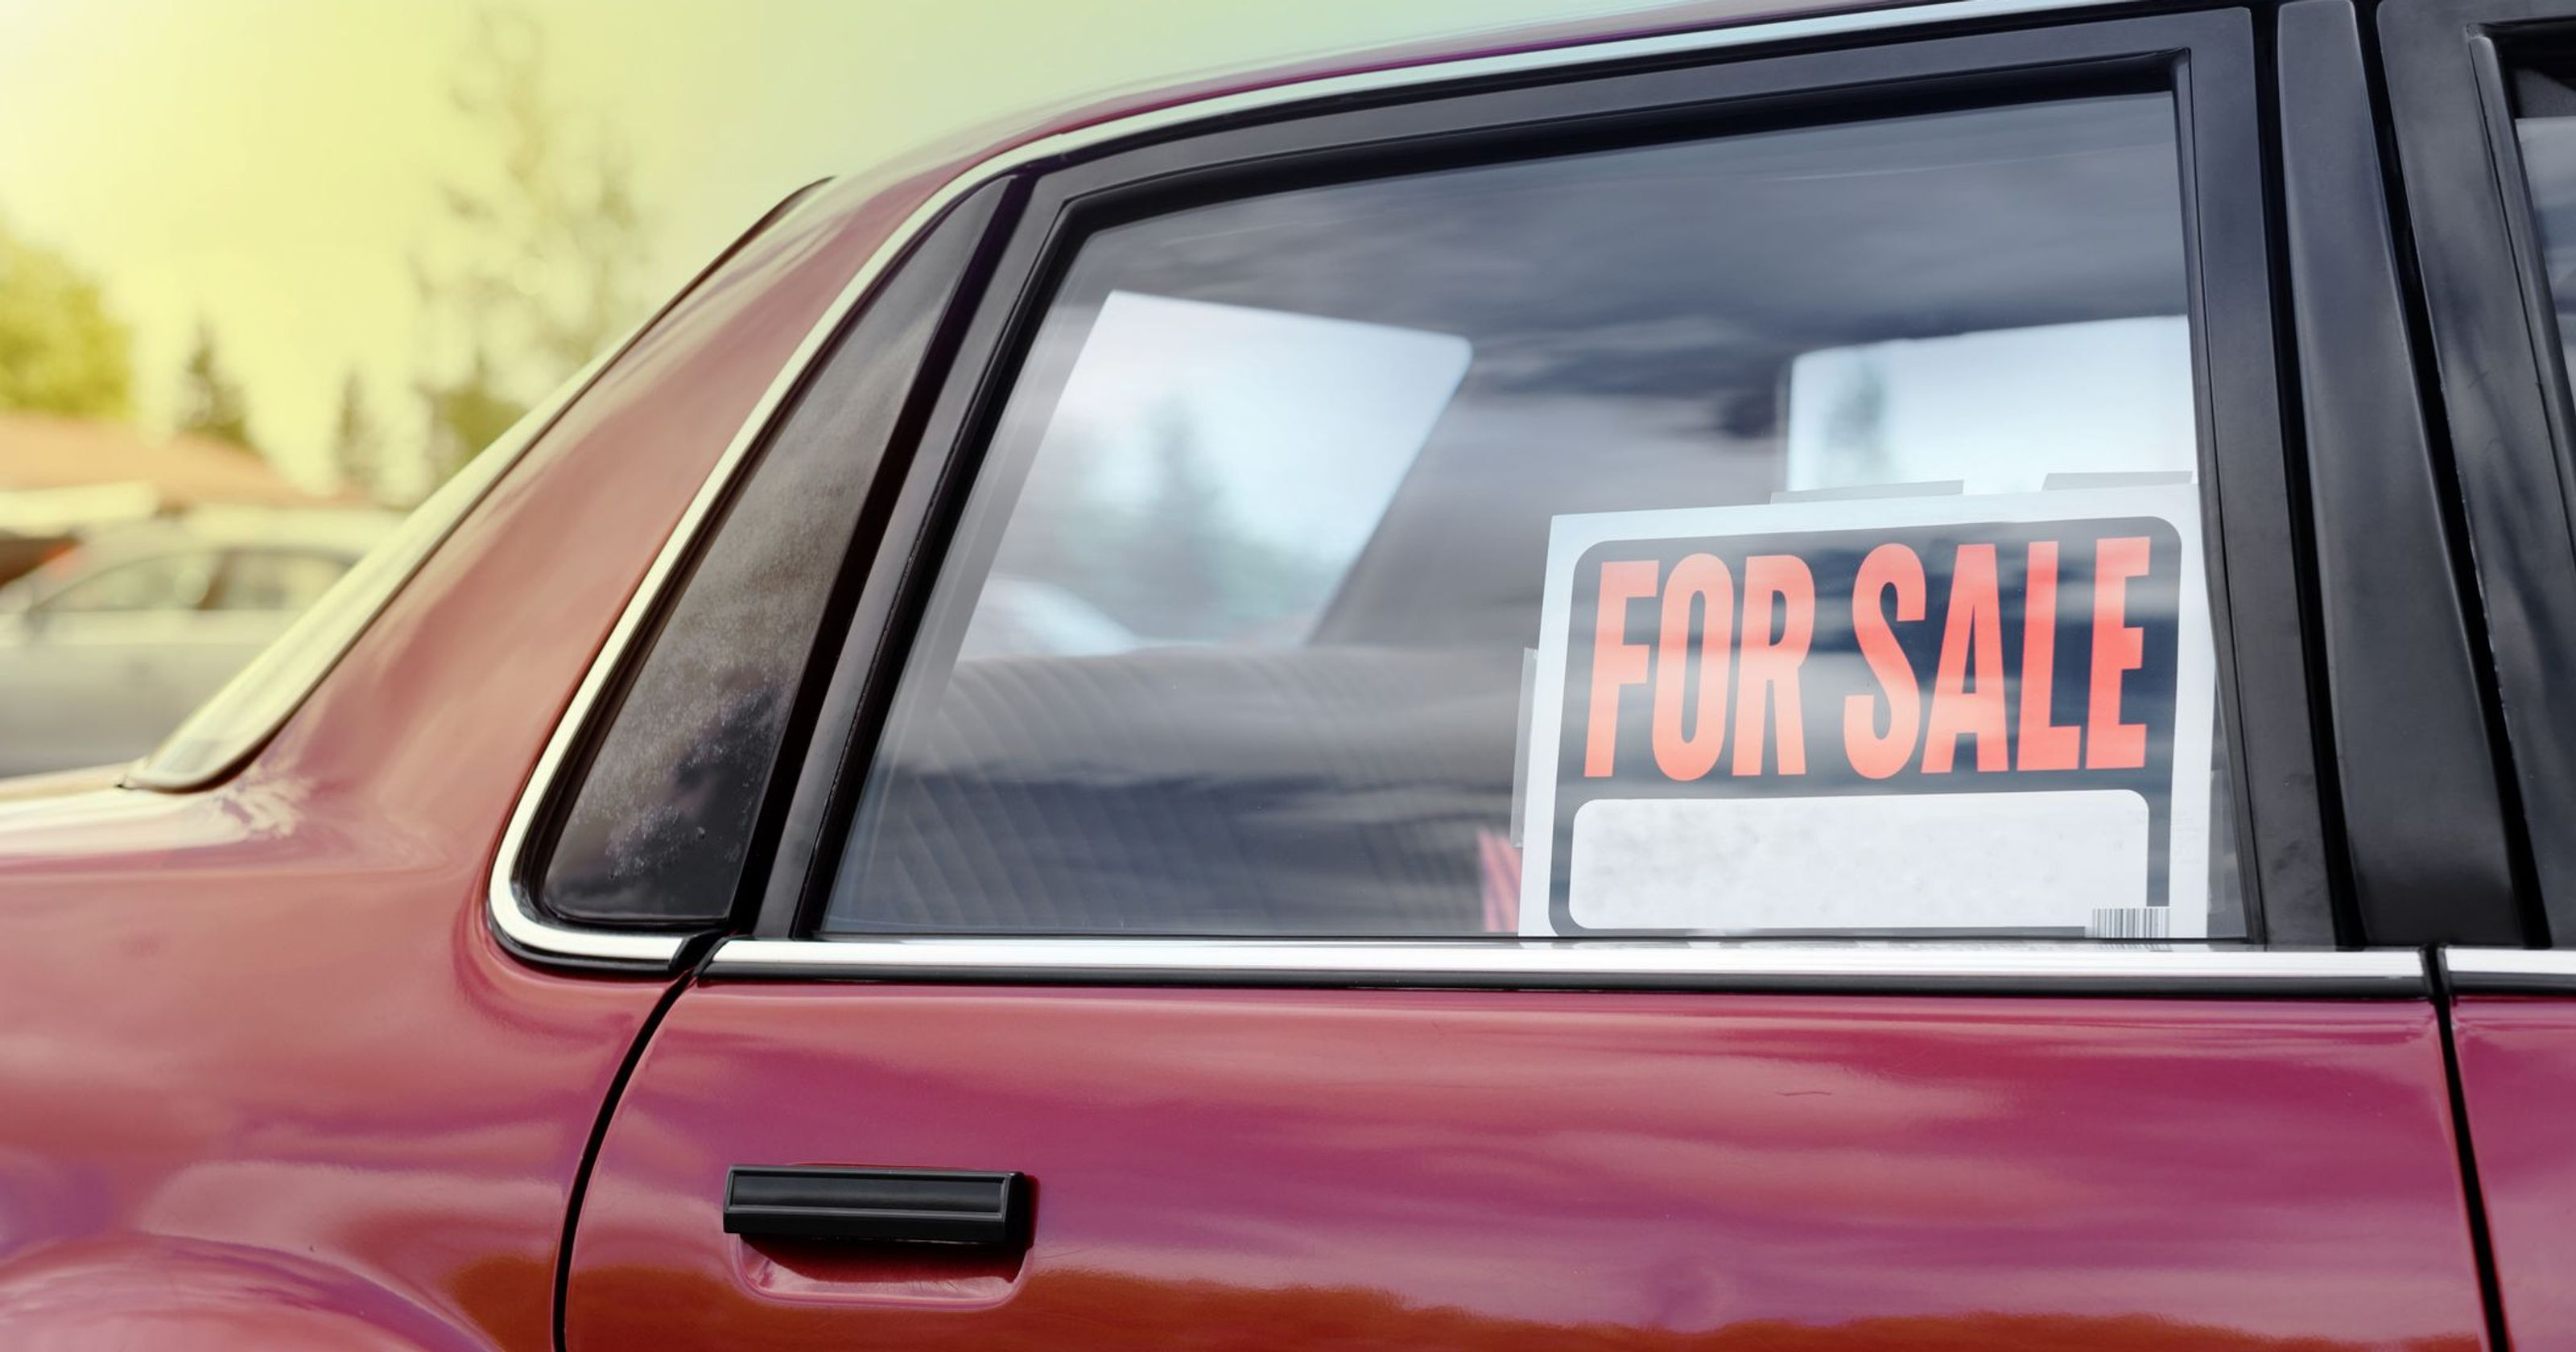 Best Place to Buy Used Cars Online Unique Tips On How to Find A Cheap Reliable Used Car to